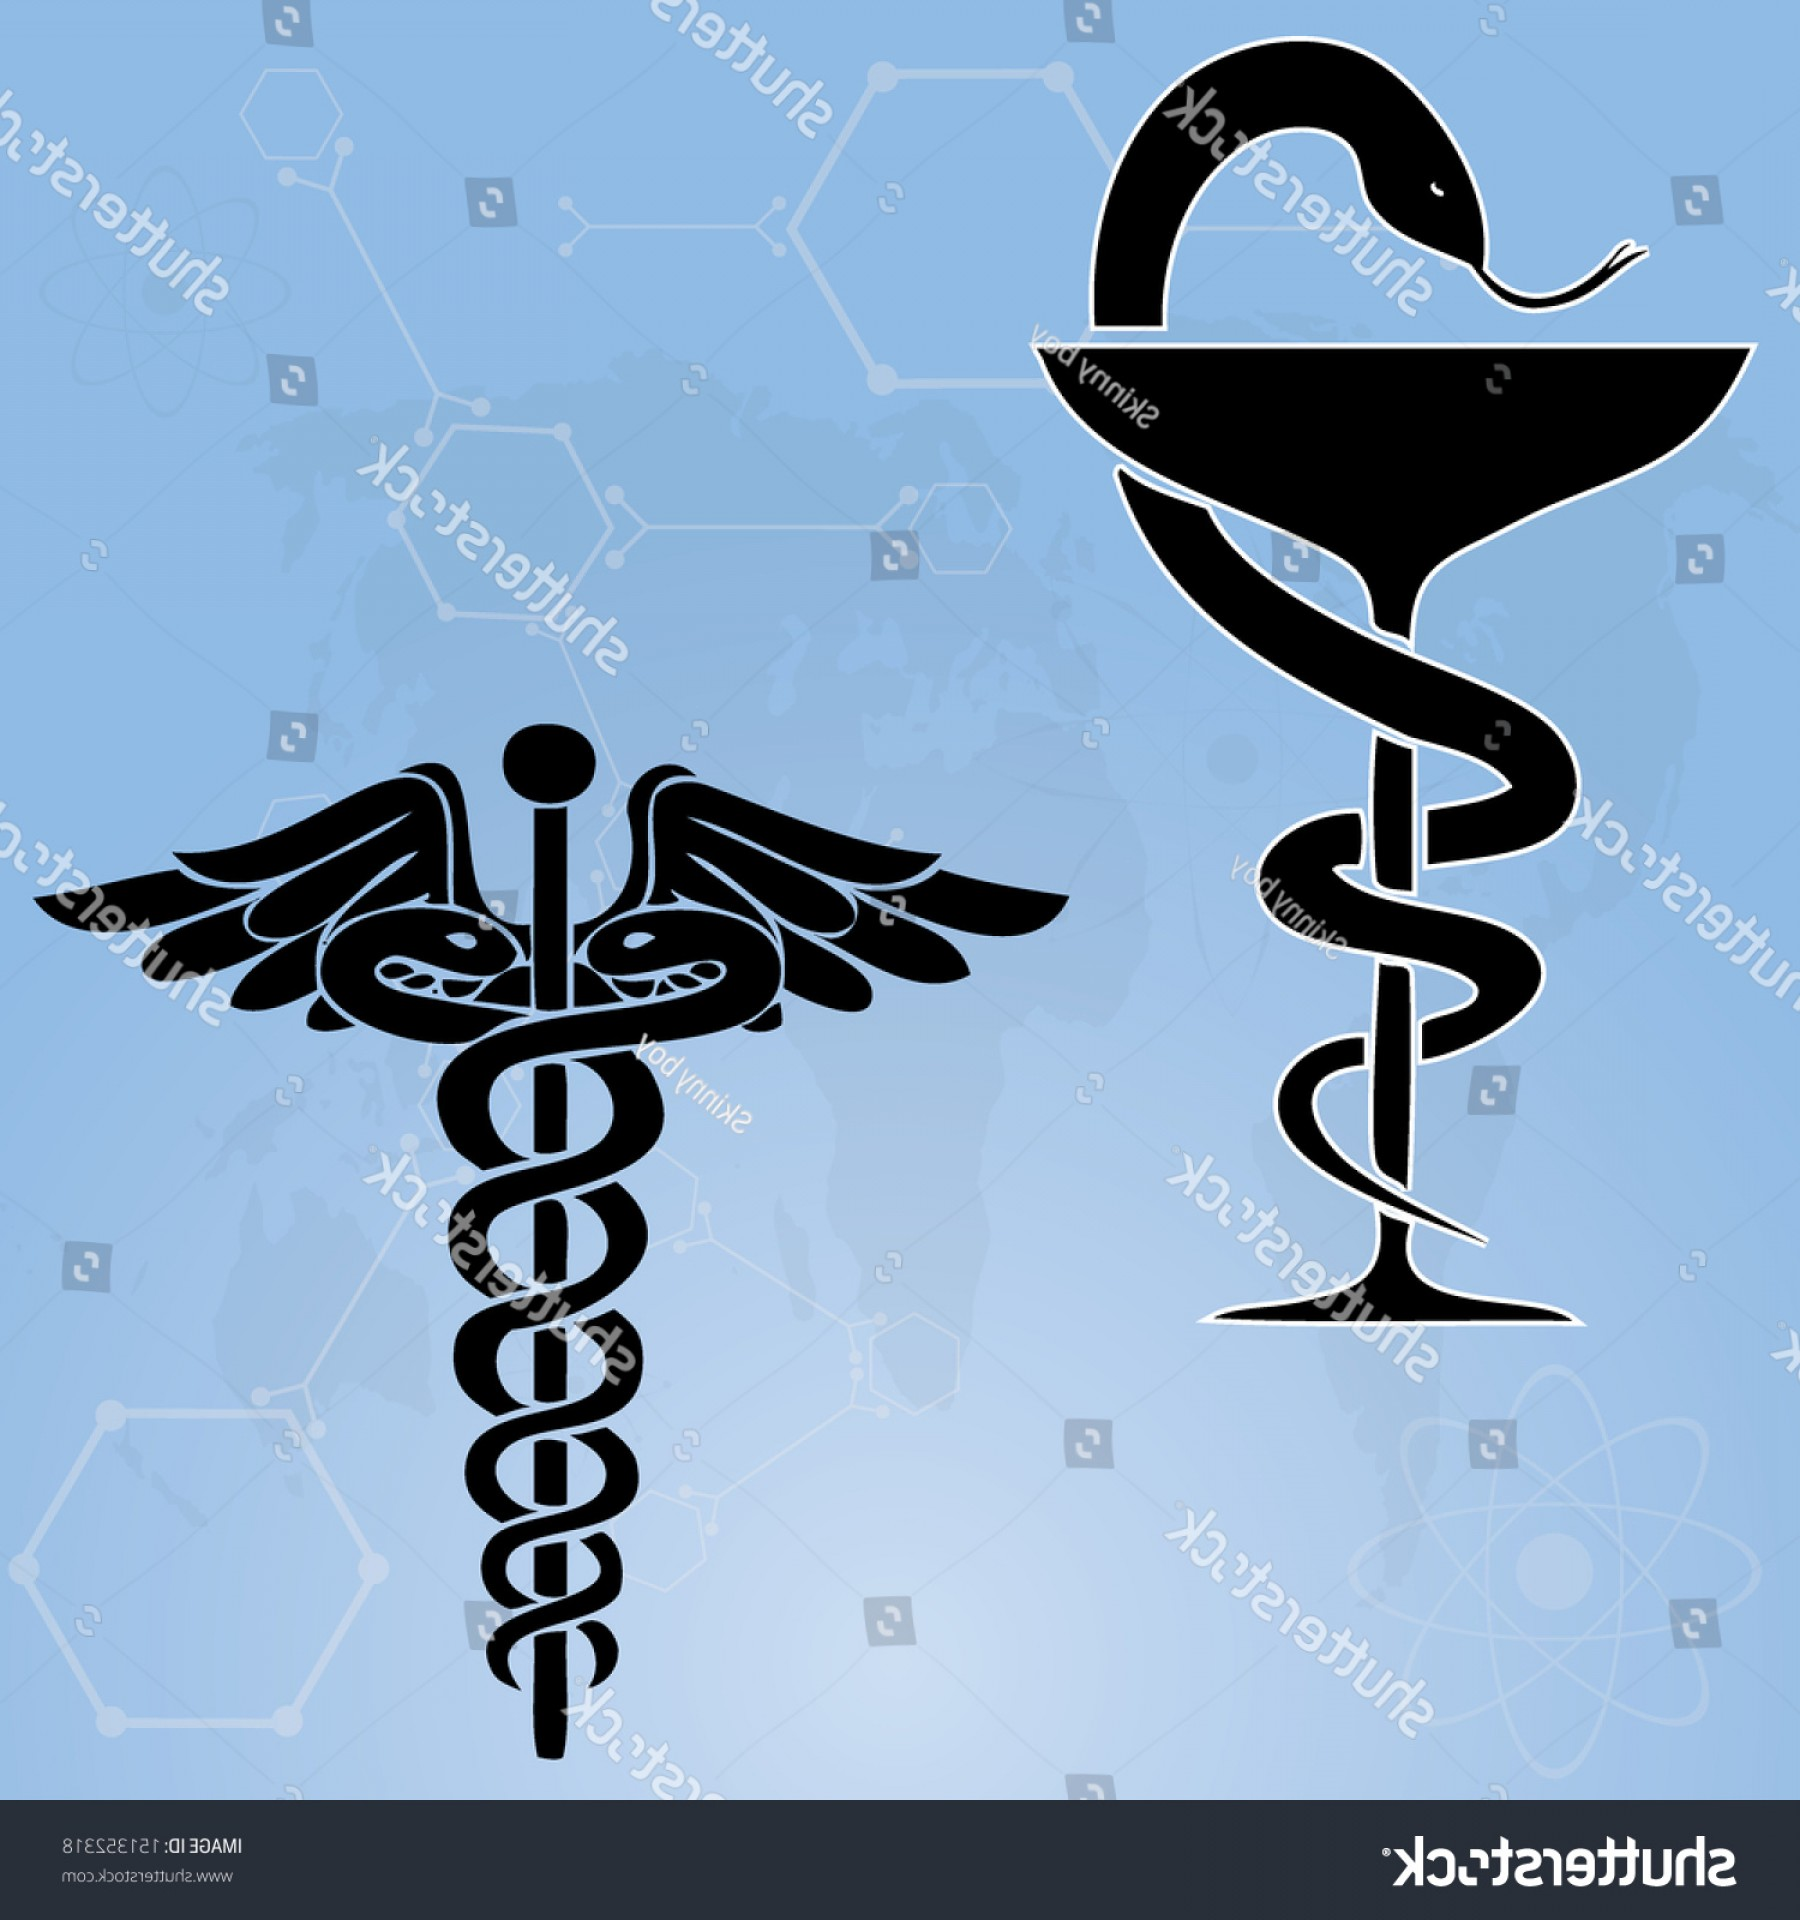 Medical Scepter Vector: Caduceus Medical Symbol Vector Illustrationeps